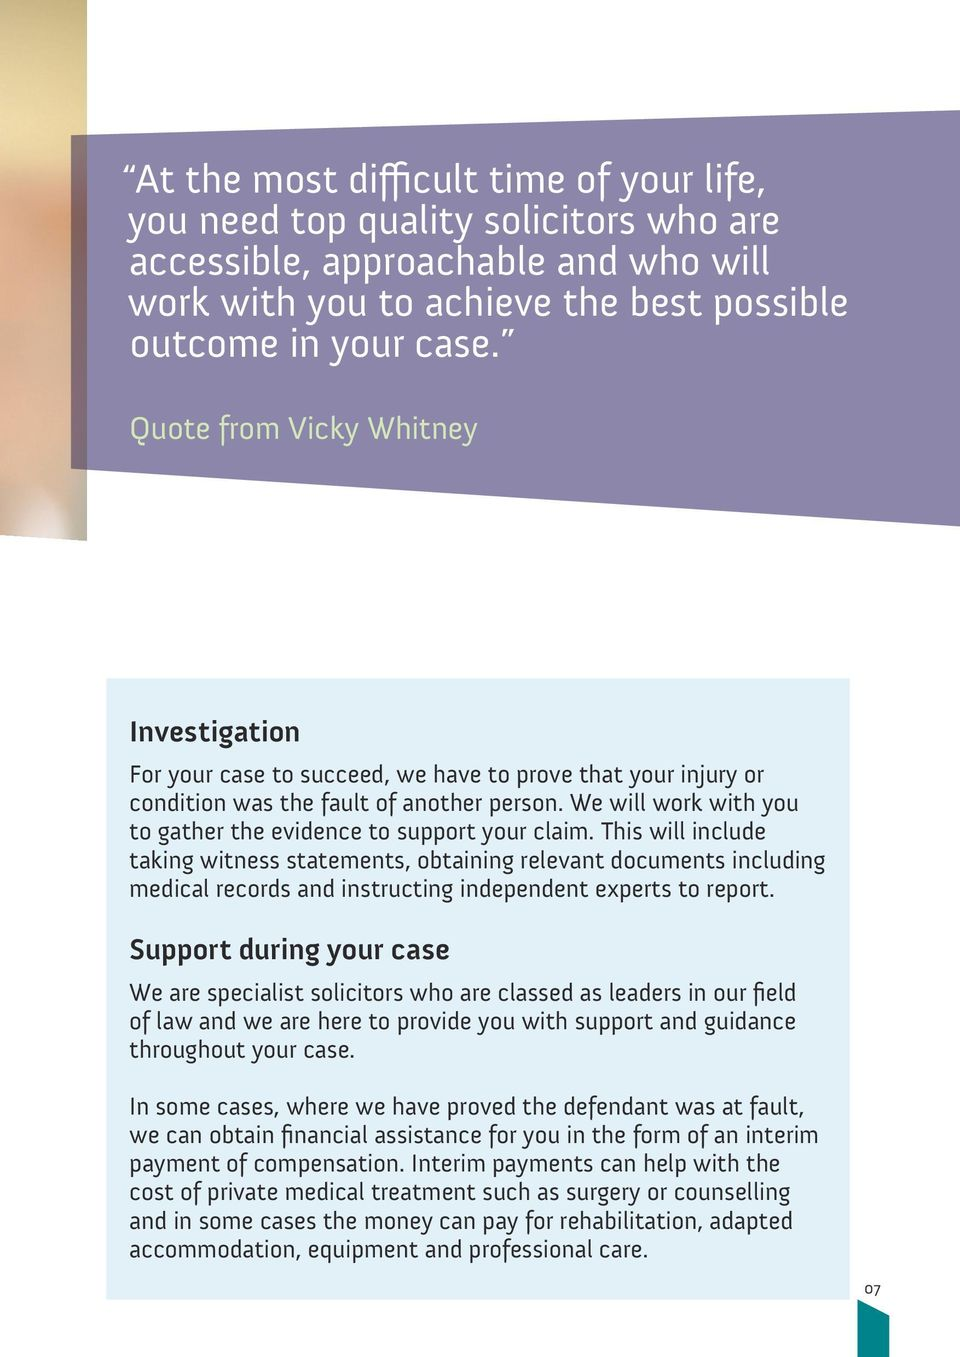 We will work with you to gather the evidence to support your claim.